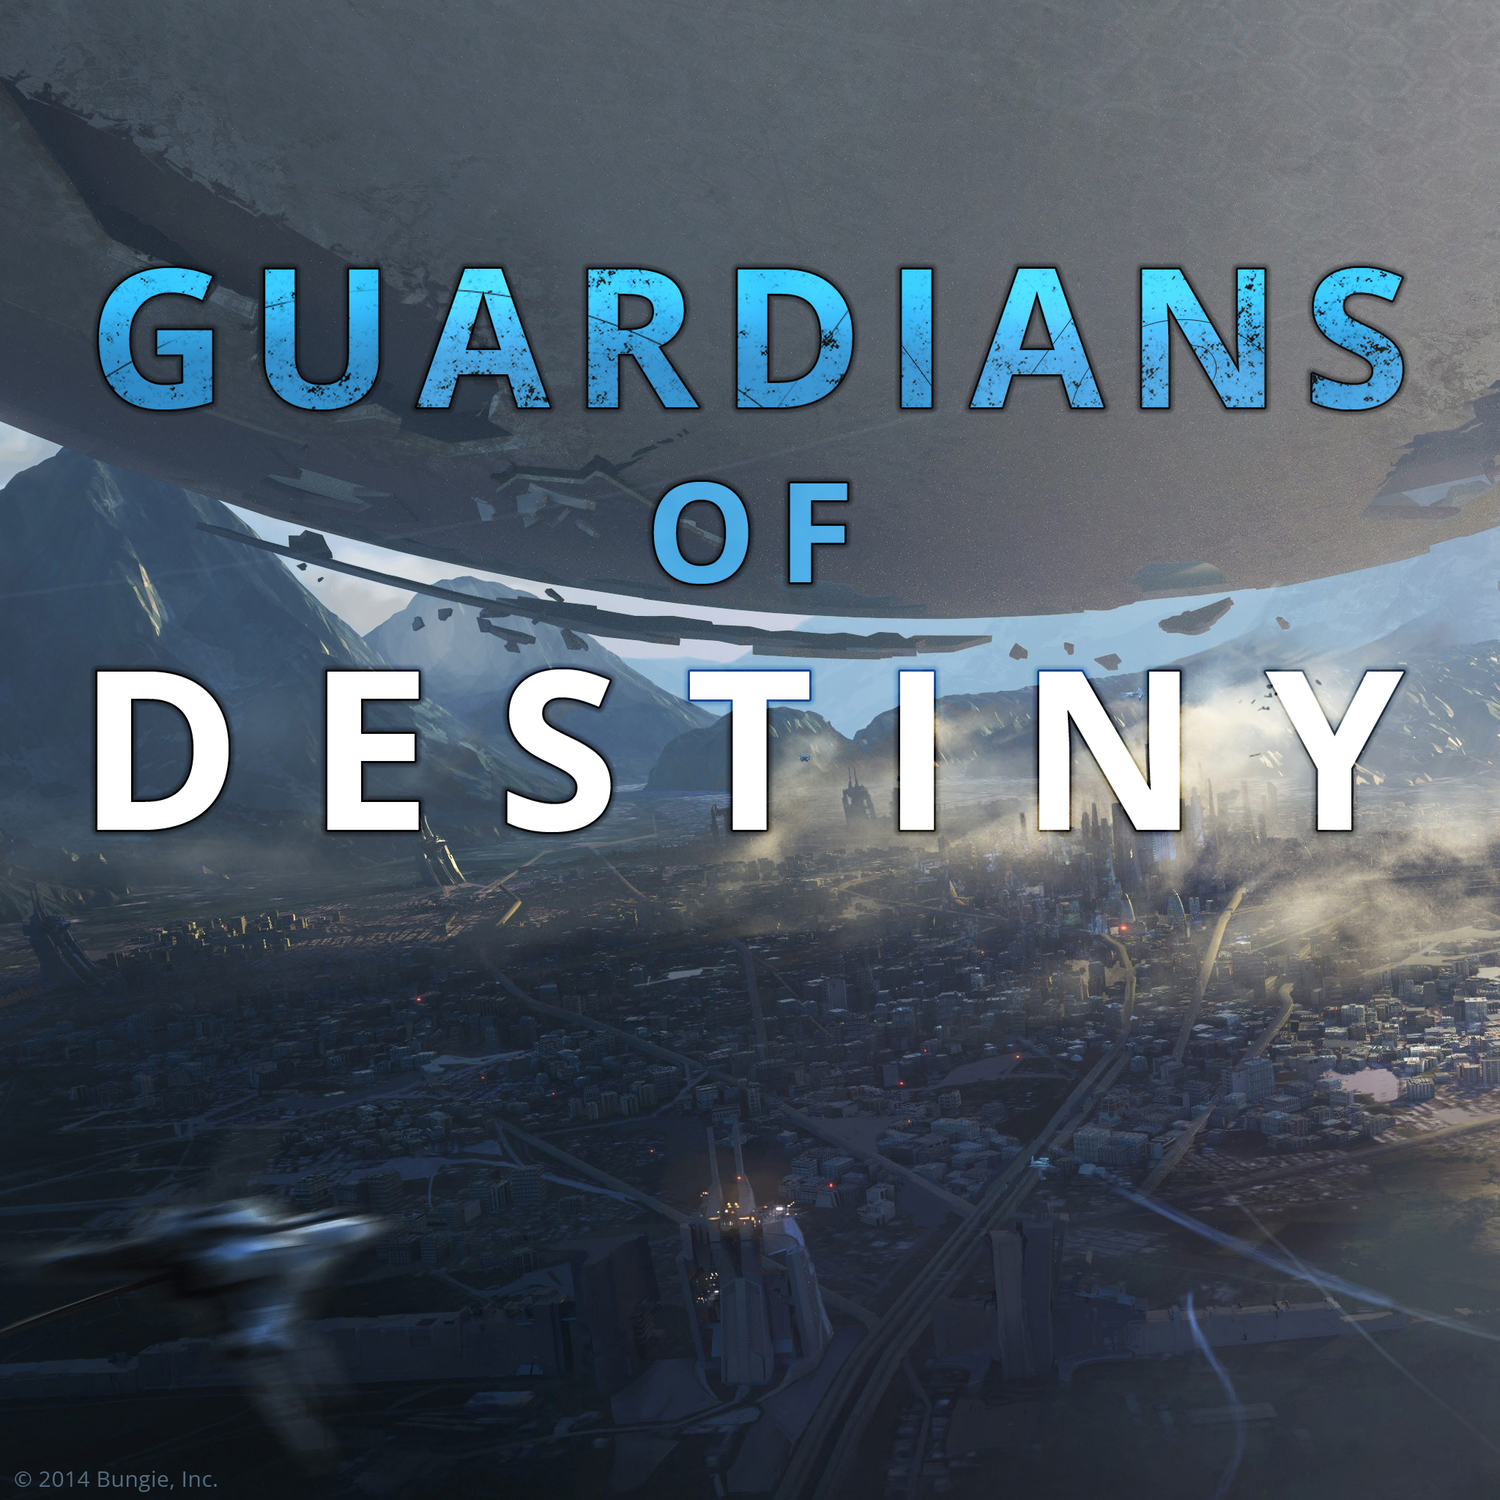 Guardians of Destiny - Starwalker Studios